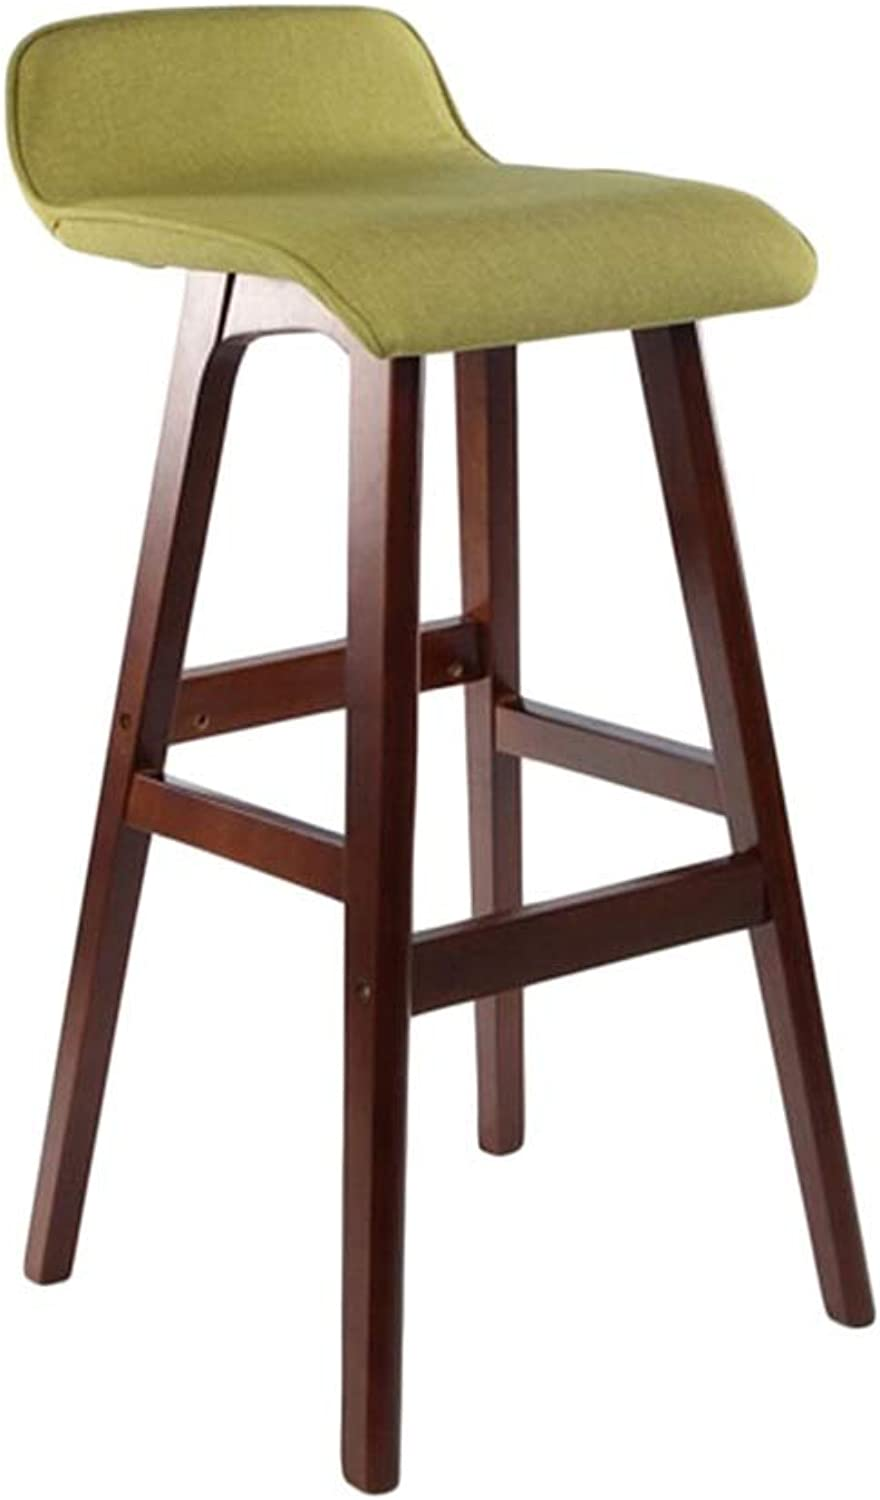 BARSTOOLRI Bar Stool with Backrest, Solid Wood Non-Slip Ergonomic Green Removable Cushion Cover High Chair for Living Room Kitchen Office Garden (Size   Short)